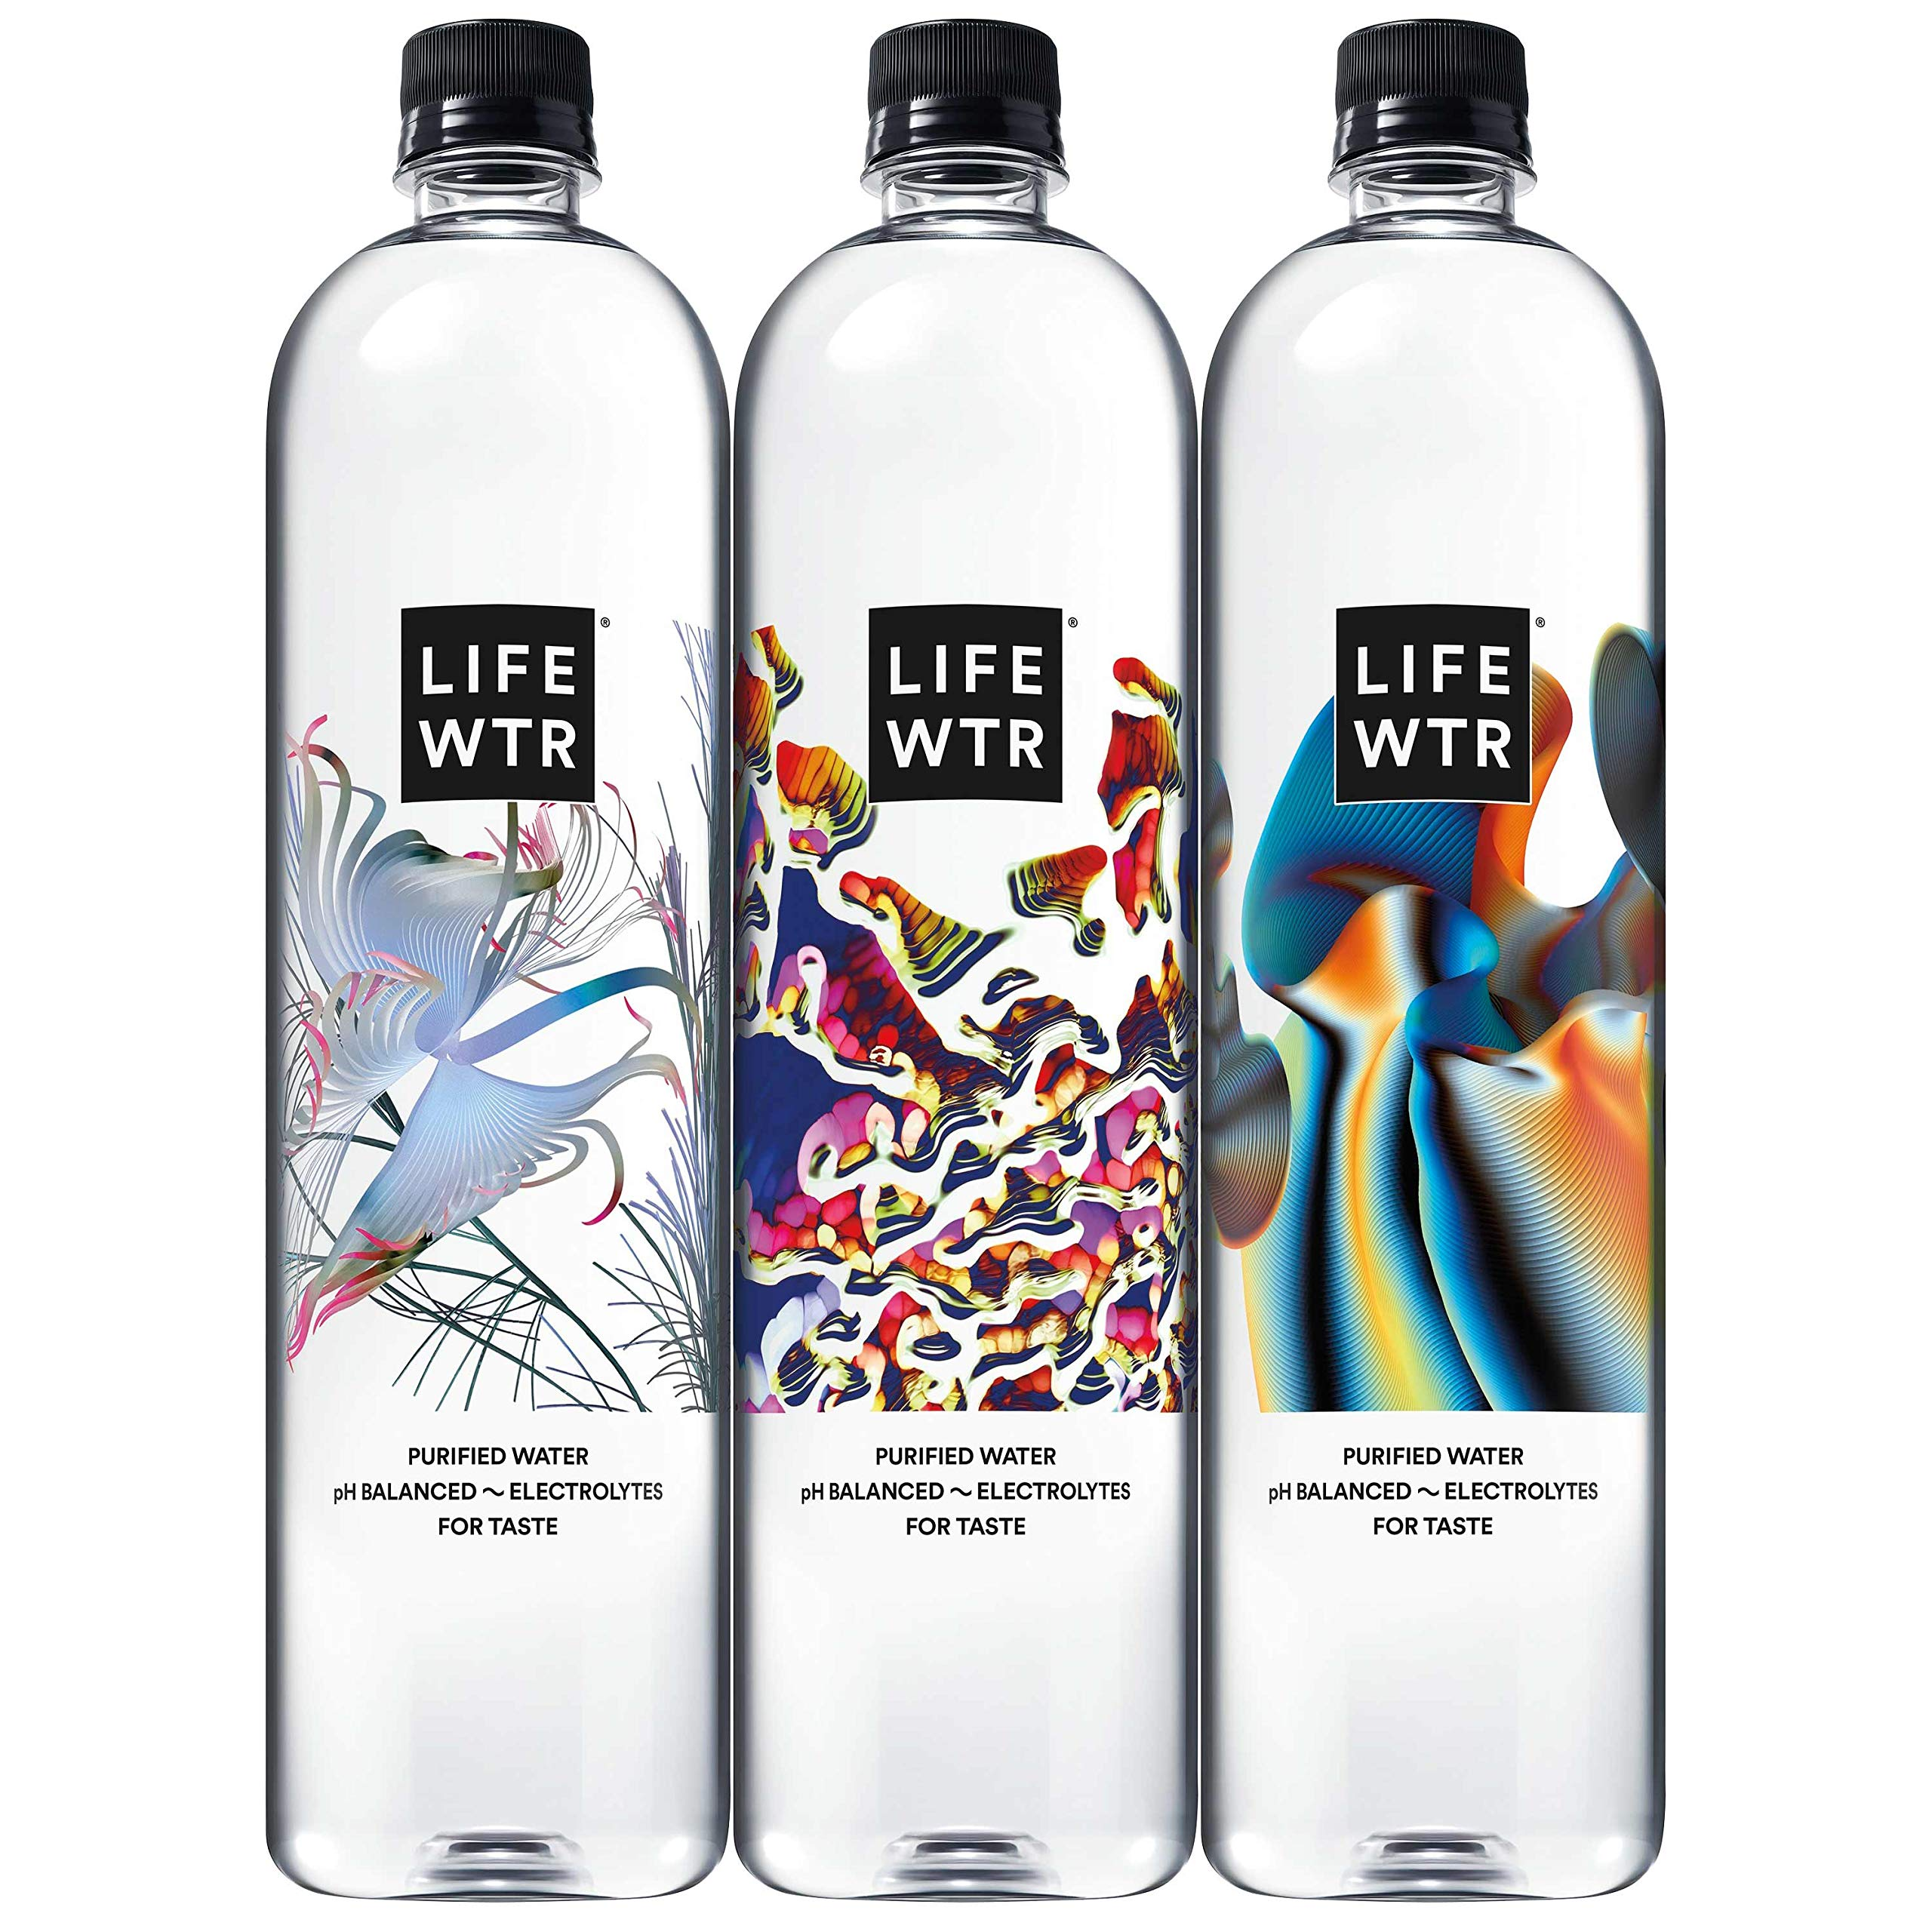 LIFEWTR, Premium Purified Water, pH Balanced with Electrolytes For Taste, 1 liter bottles